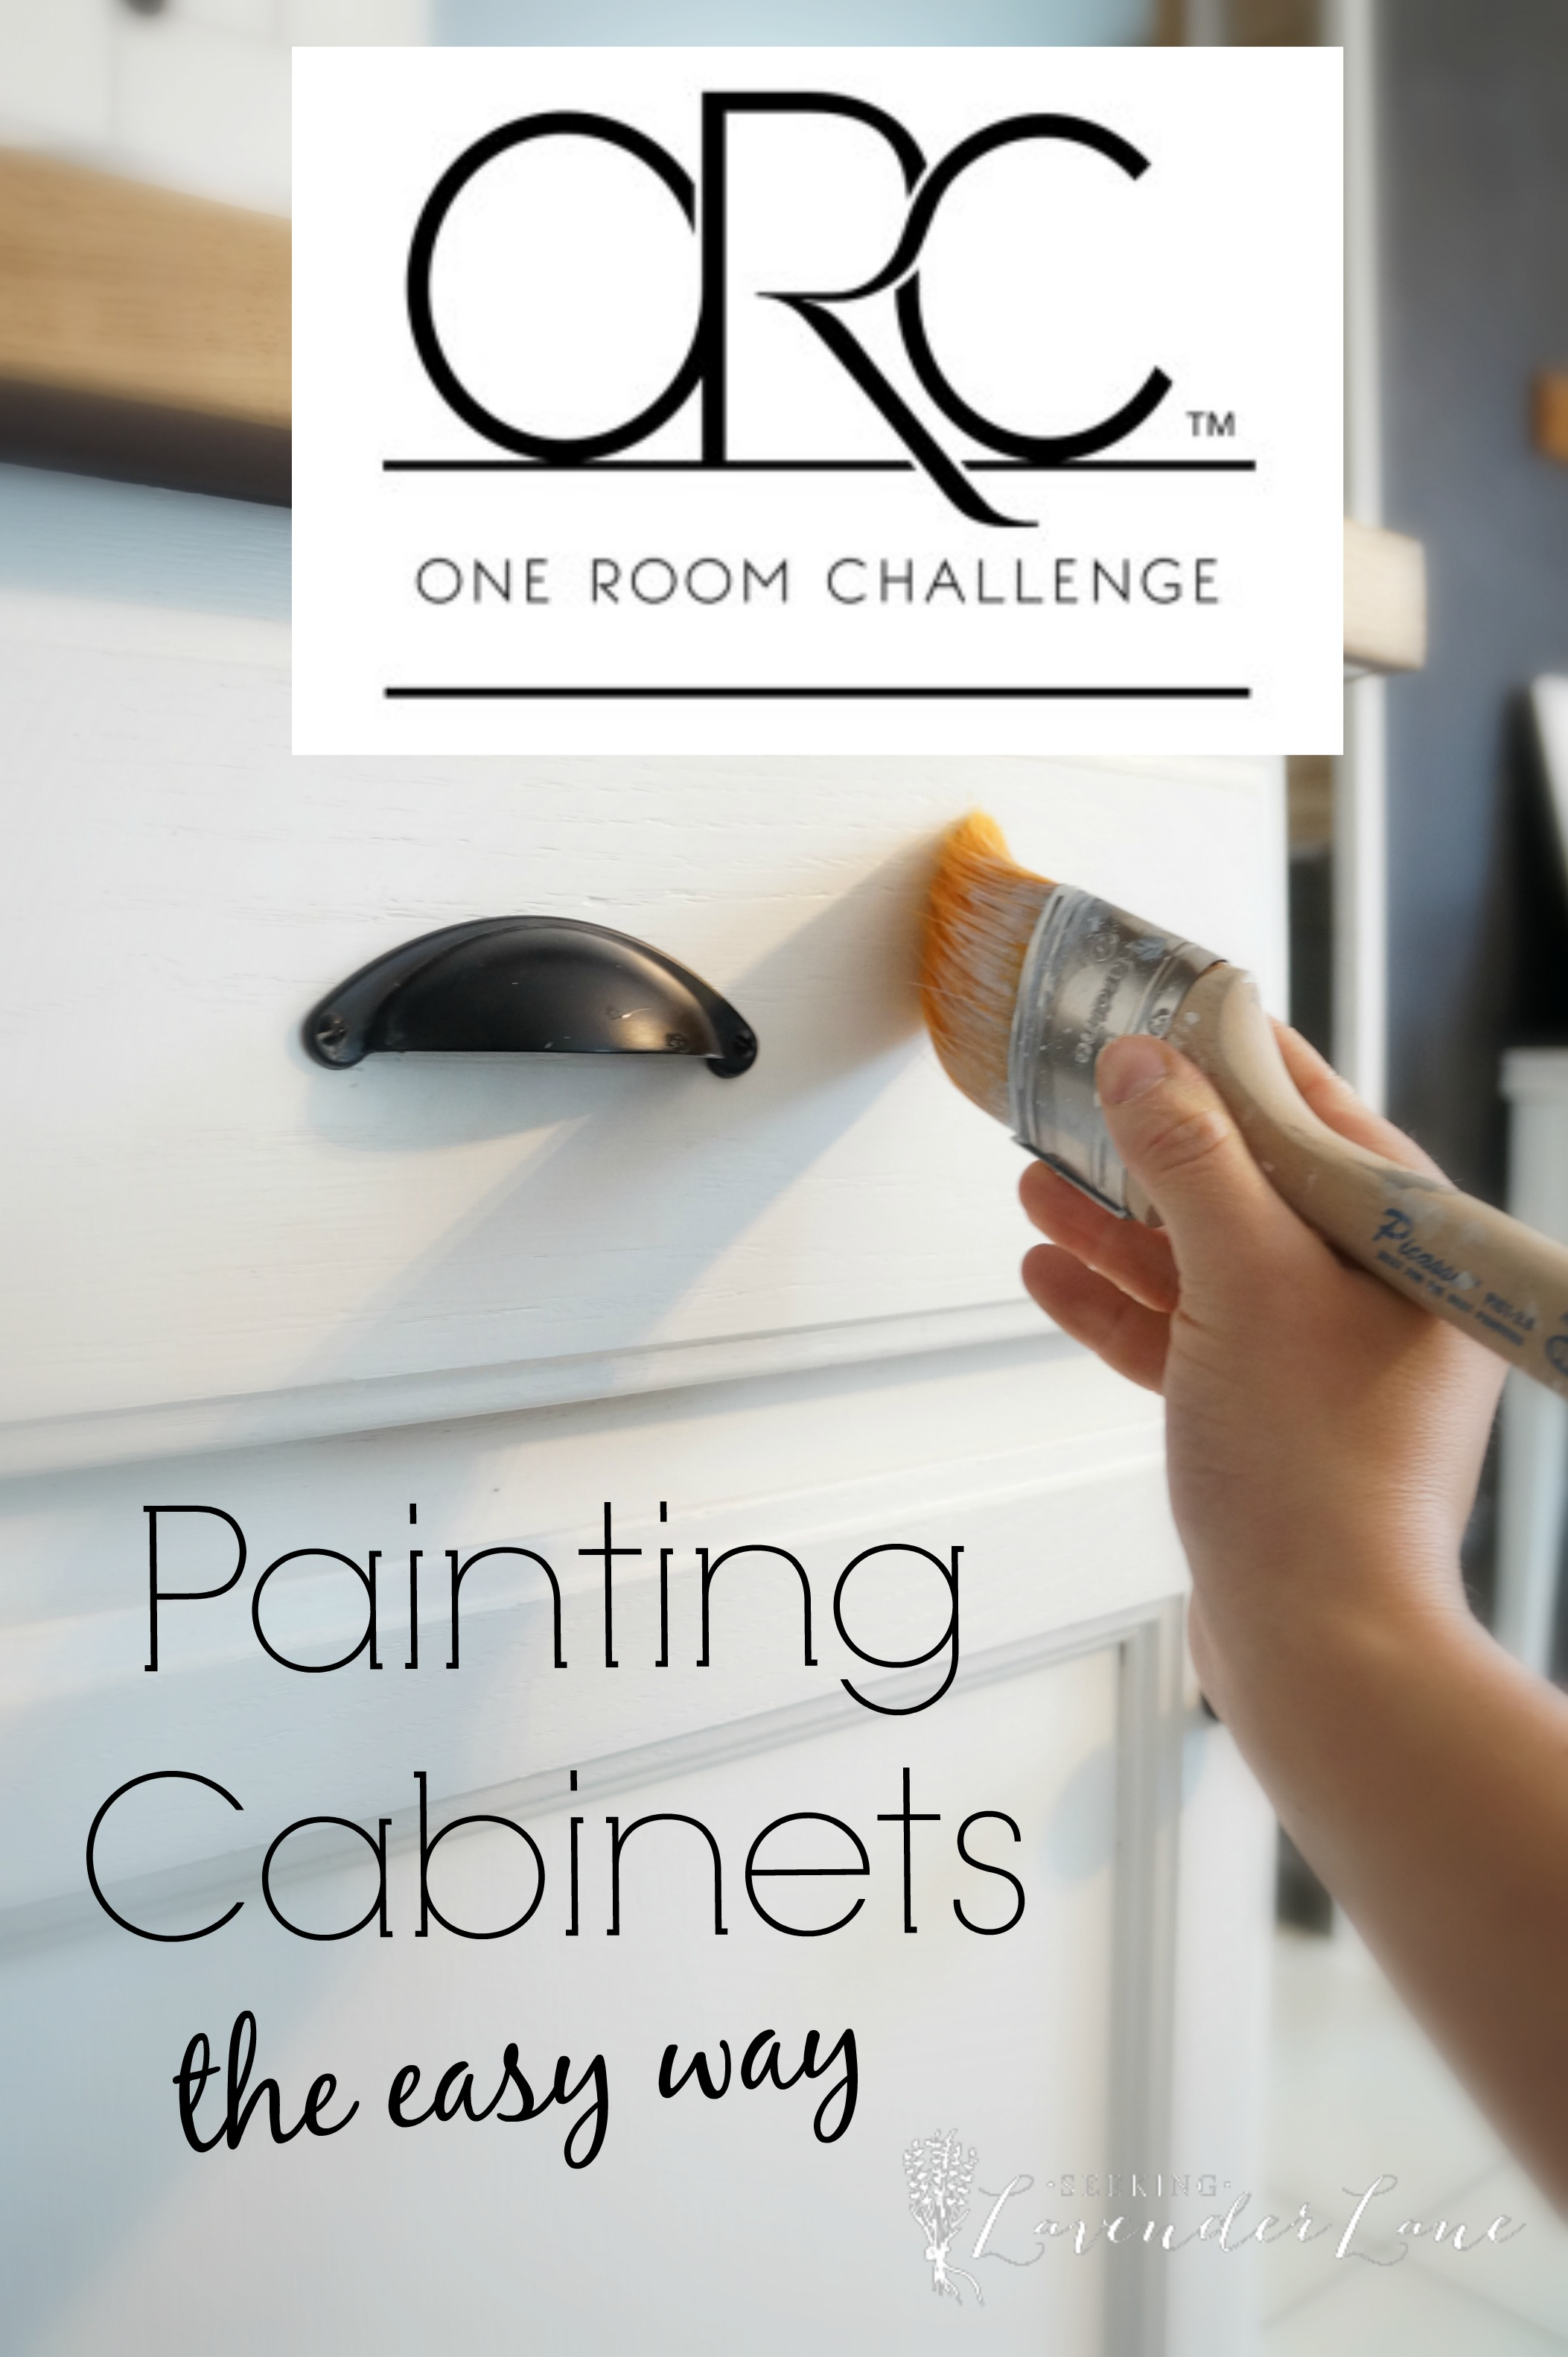 Interior Easy Way To Paint Kitchen Cabinets painting kitchen cabinets the easy way seeking lavendar lane way